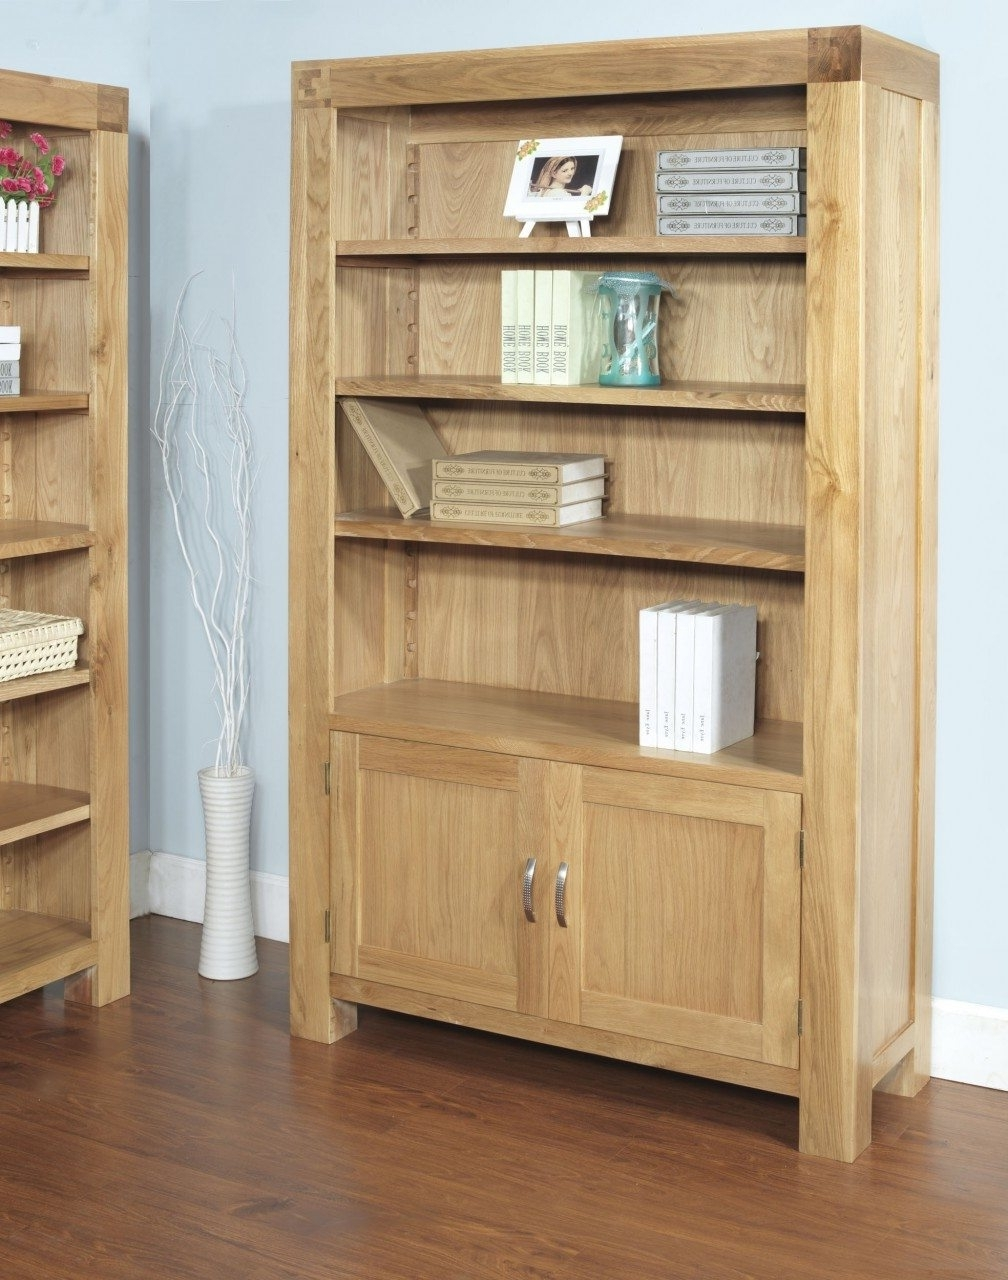 Yvotube Within Bookcases With Bottom Cabinets (Gallery 13 of 15)